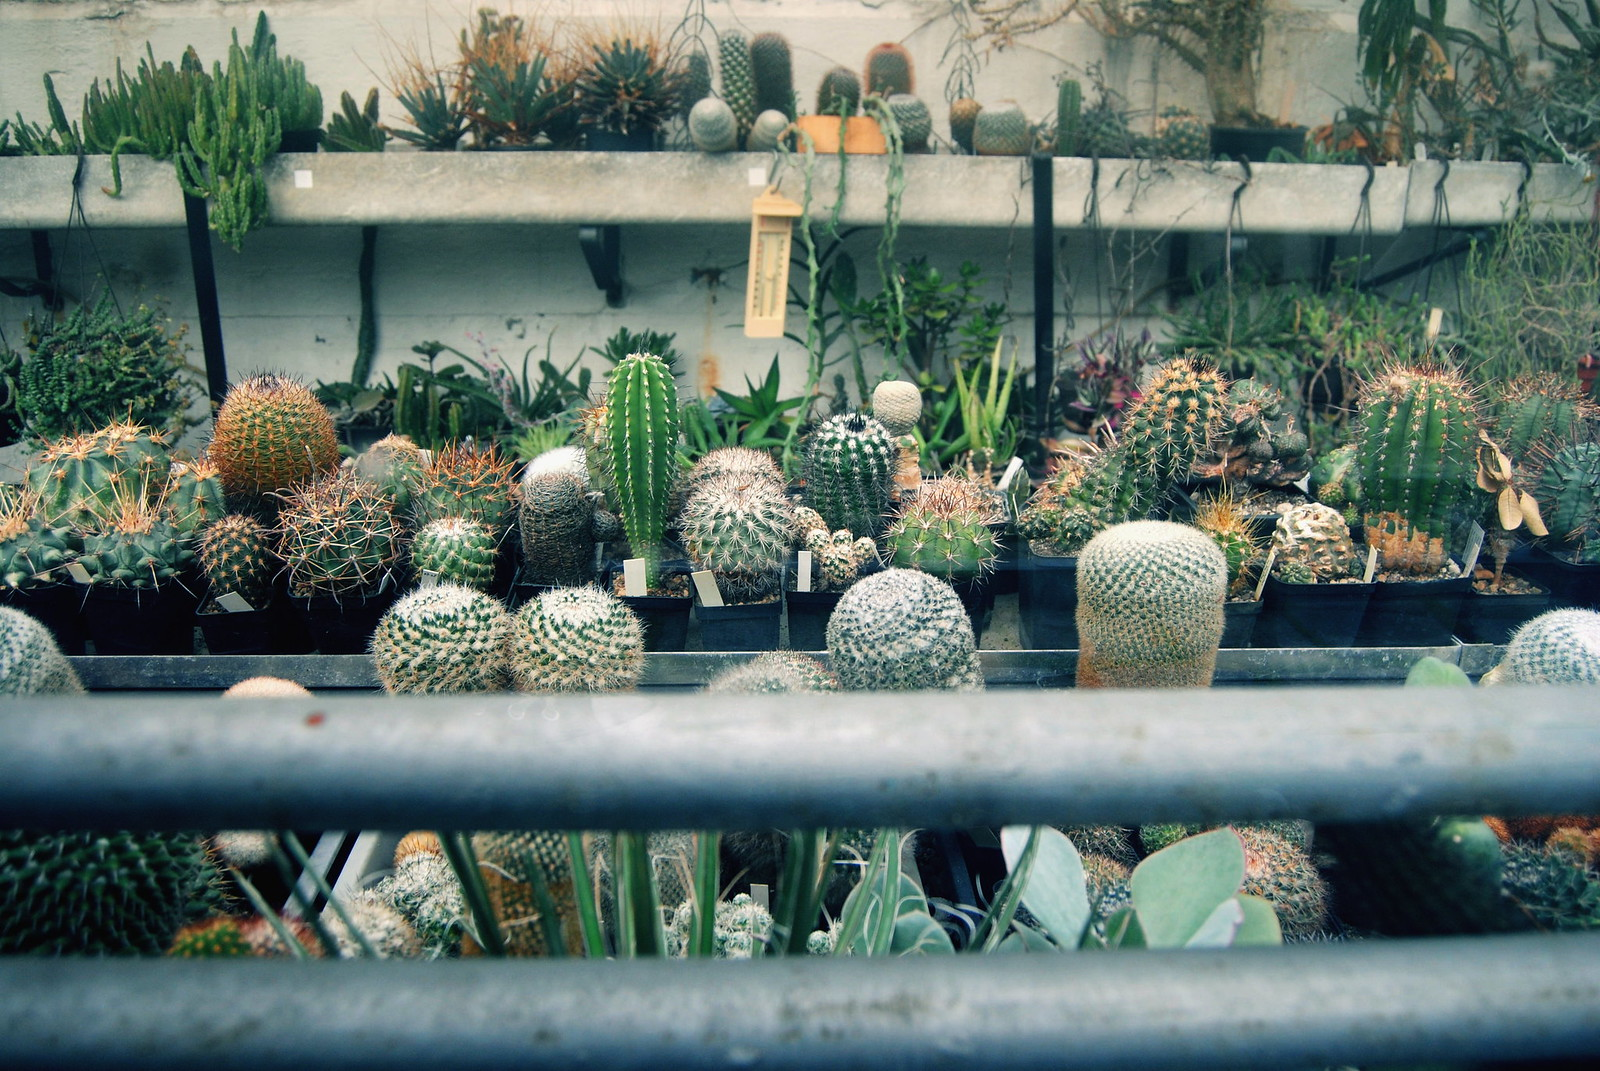 Various types of cacti in the Botanical Garden of Antwerp